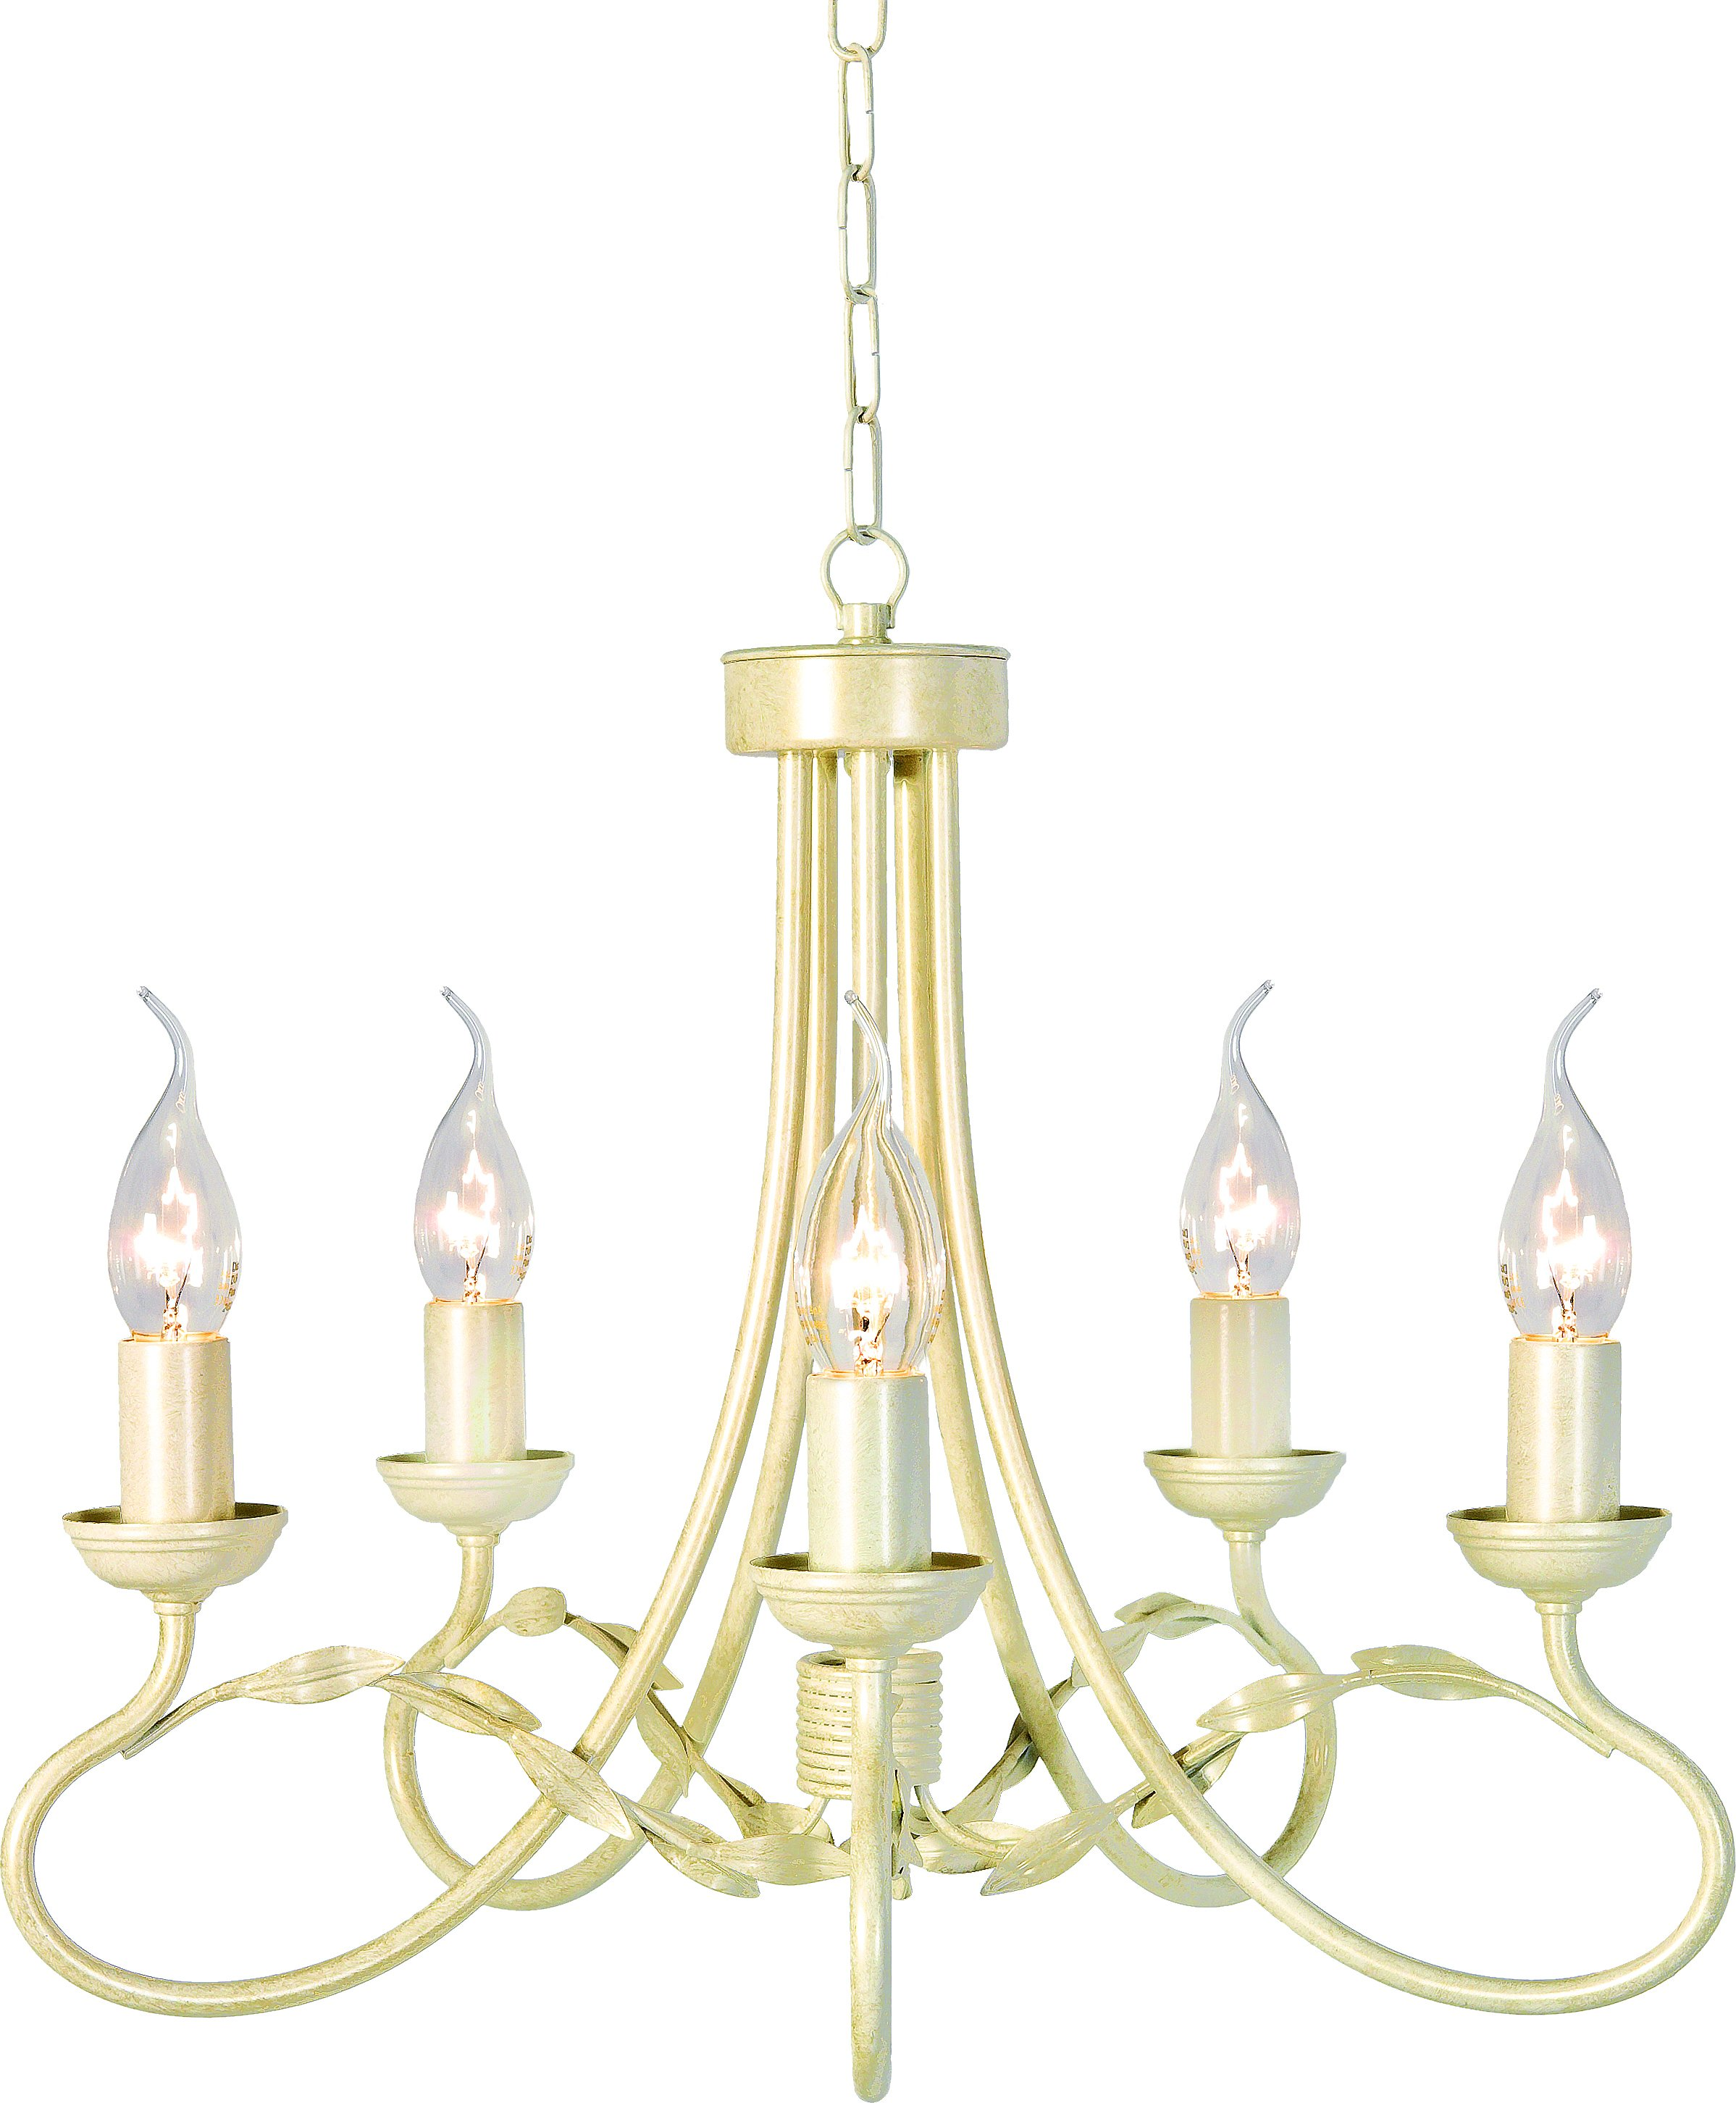 Elstead OV5-IV-GLD Olivia 5 Light Chandelier in Ivory   Gold